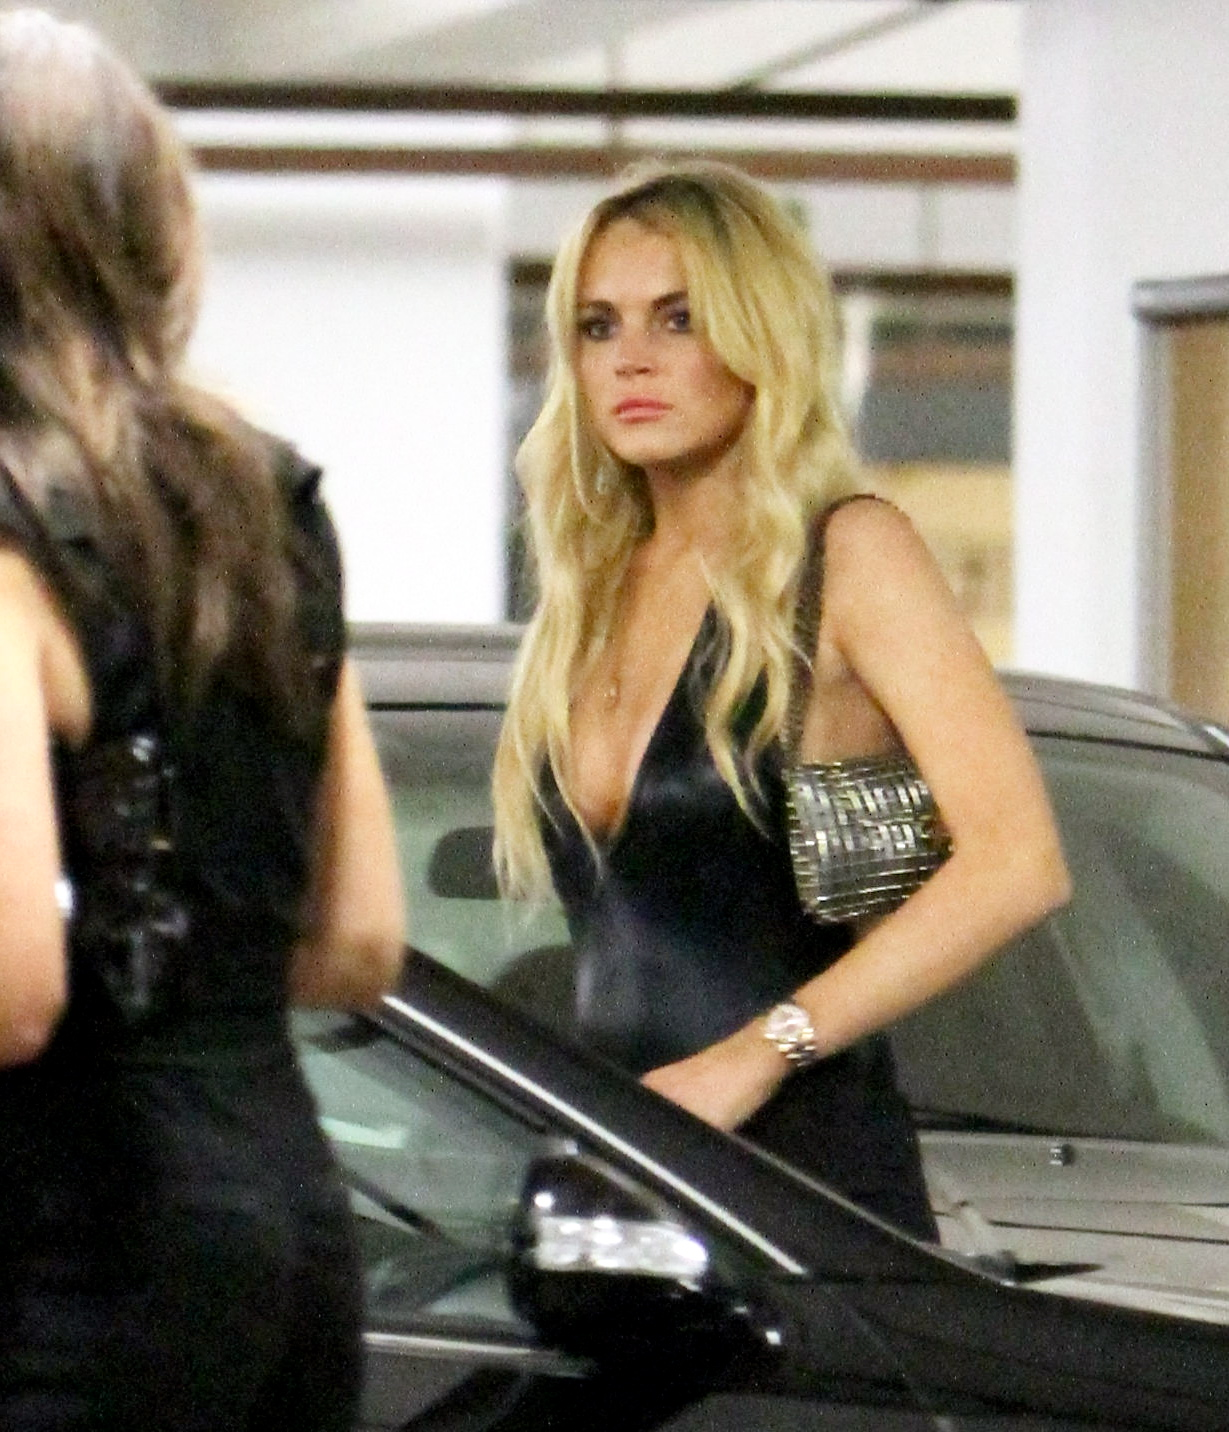 84291_CFF_Lindsay_Lohan_in_the_parking_garage_of_The_Mondrian_hotel_5_122_438lo.jpg